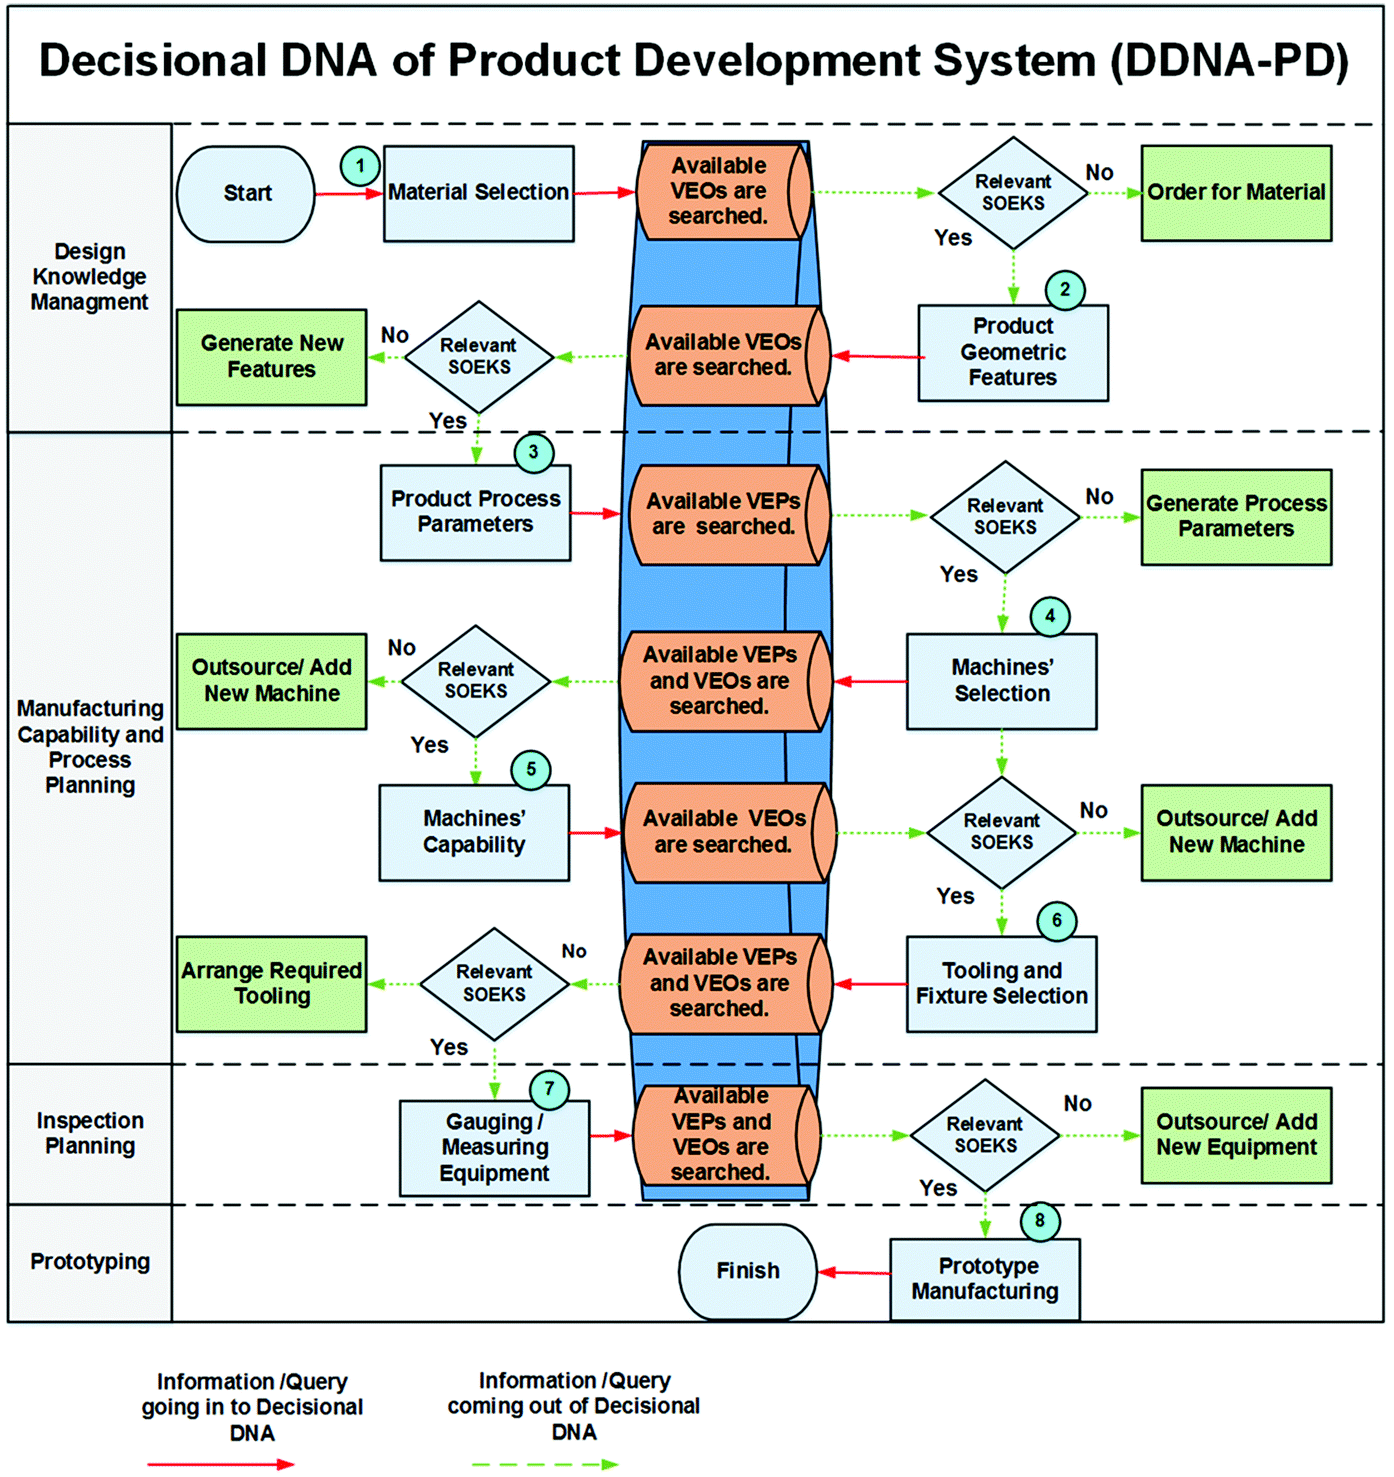 Experience Based Decisional DNA (DDNA) to Support